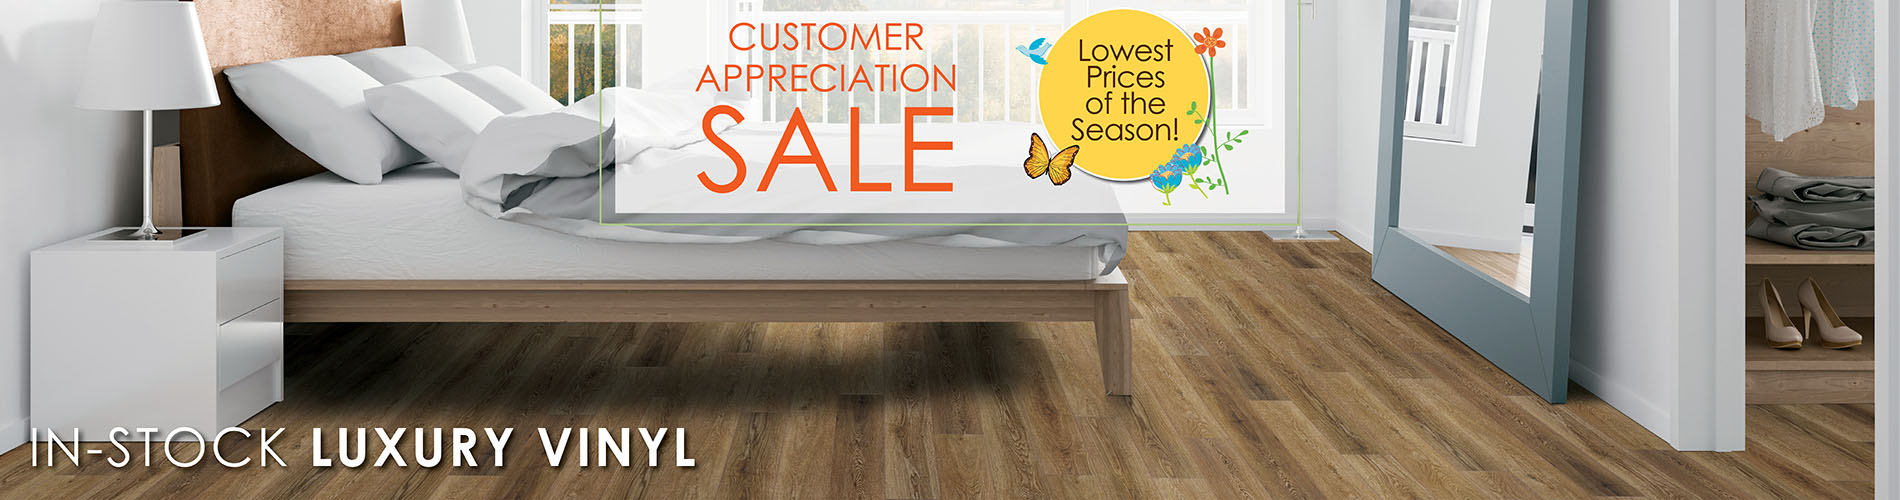 Lowest prices of the season of our in-stock luxury vinyl during our Customer Appreciation Sale